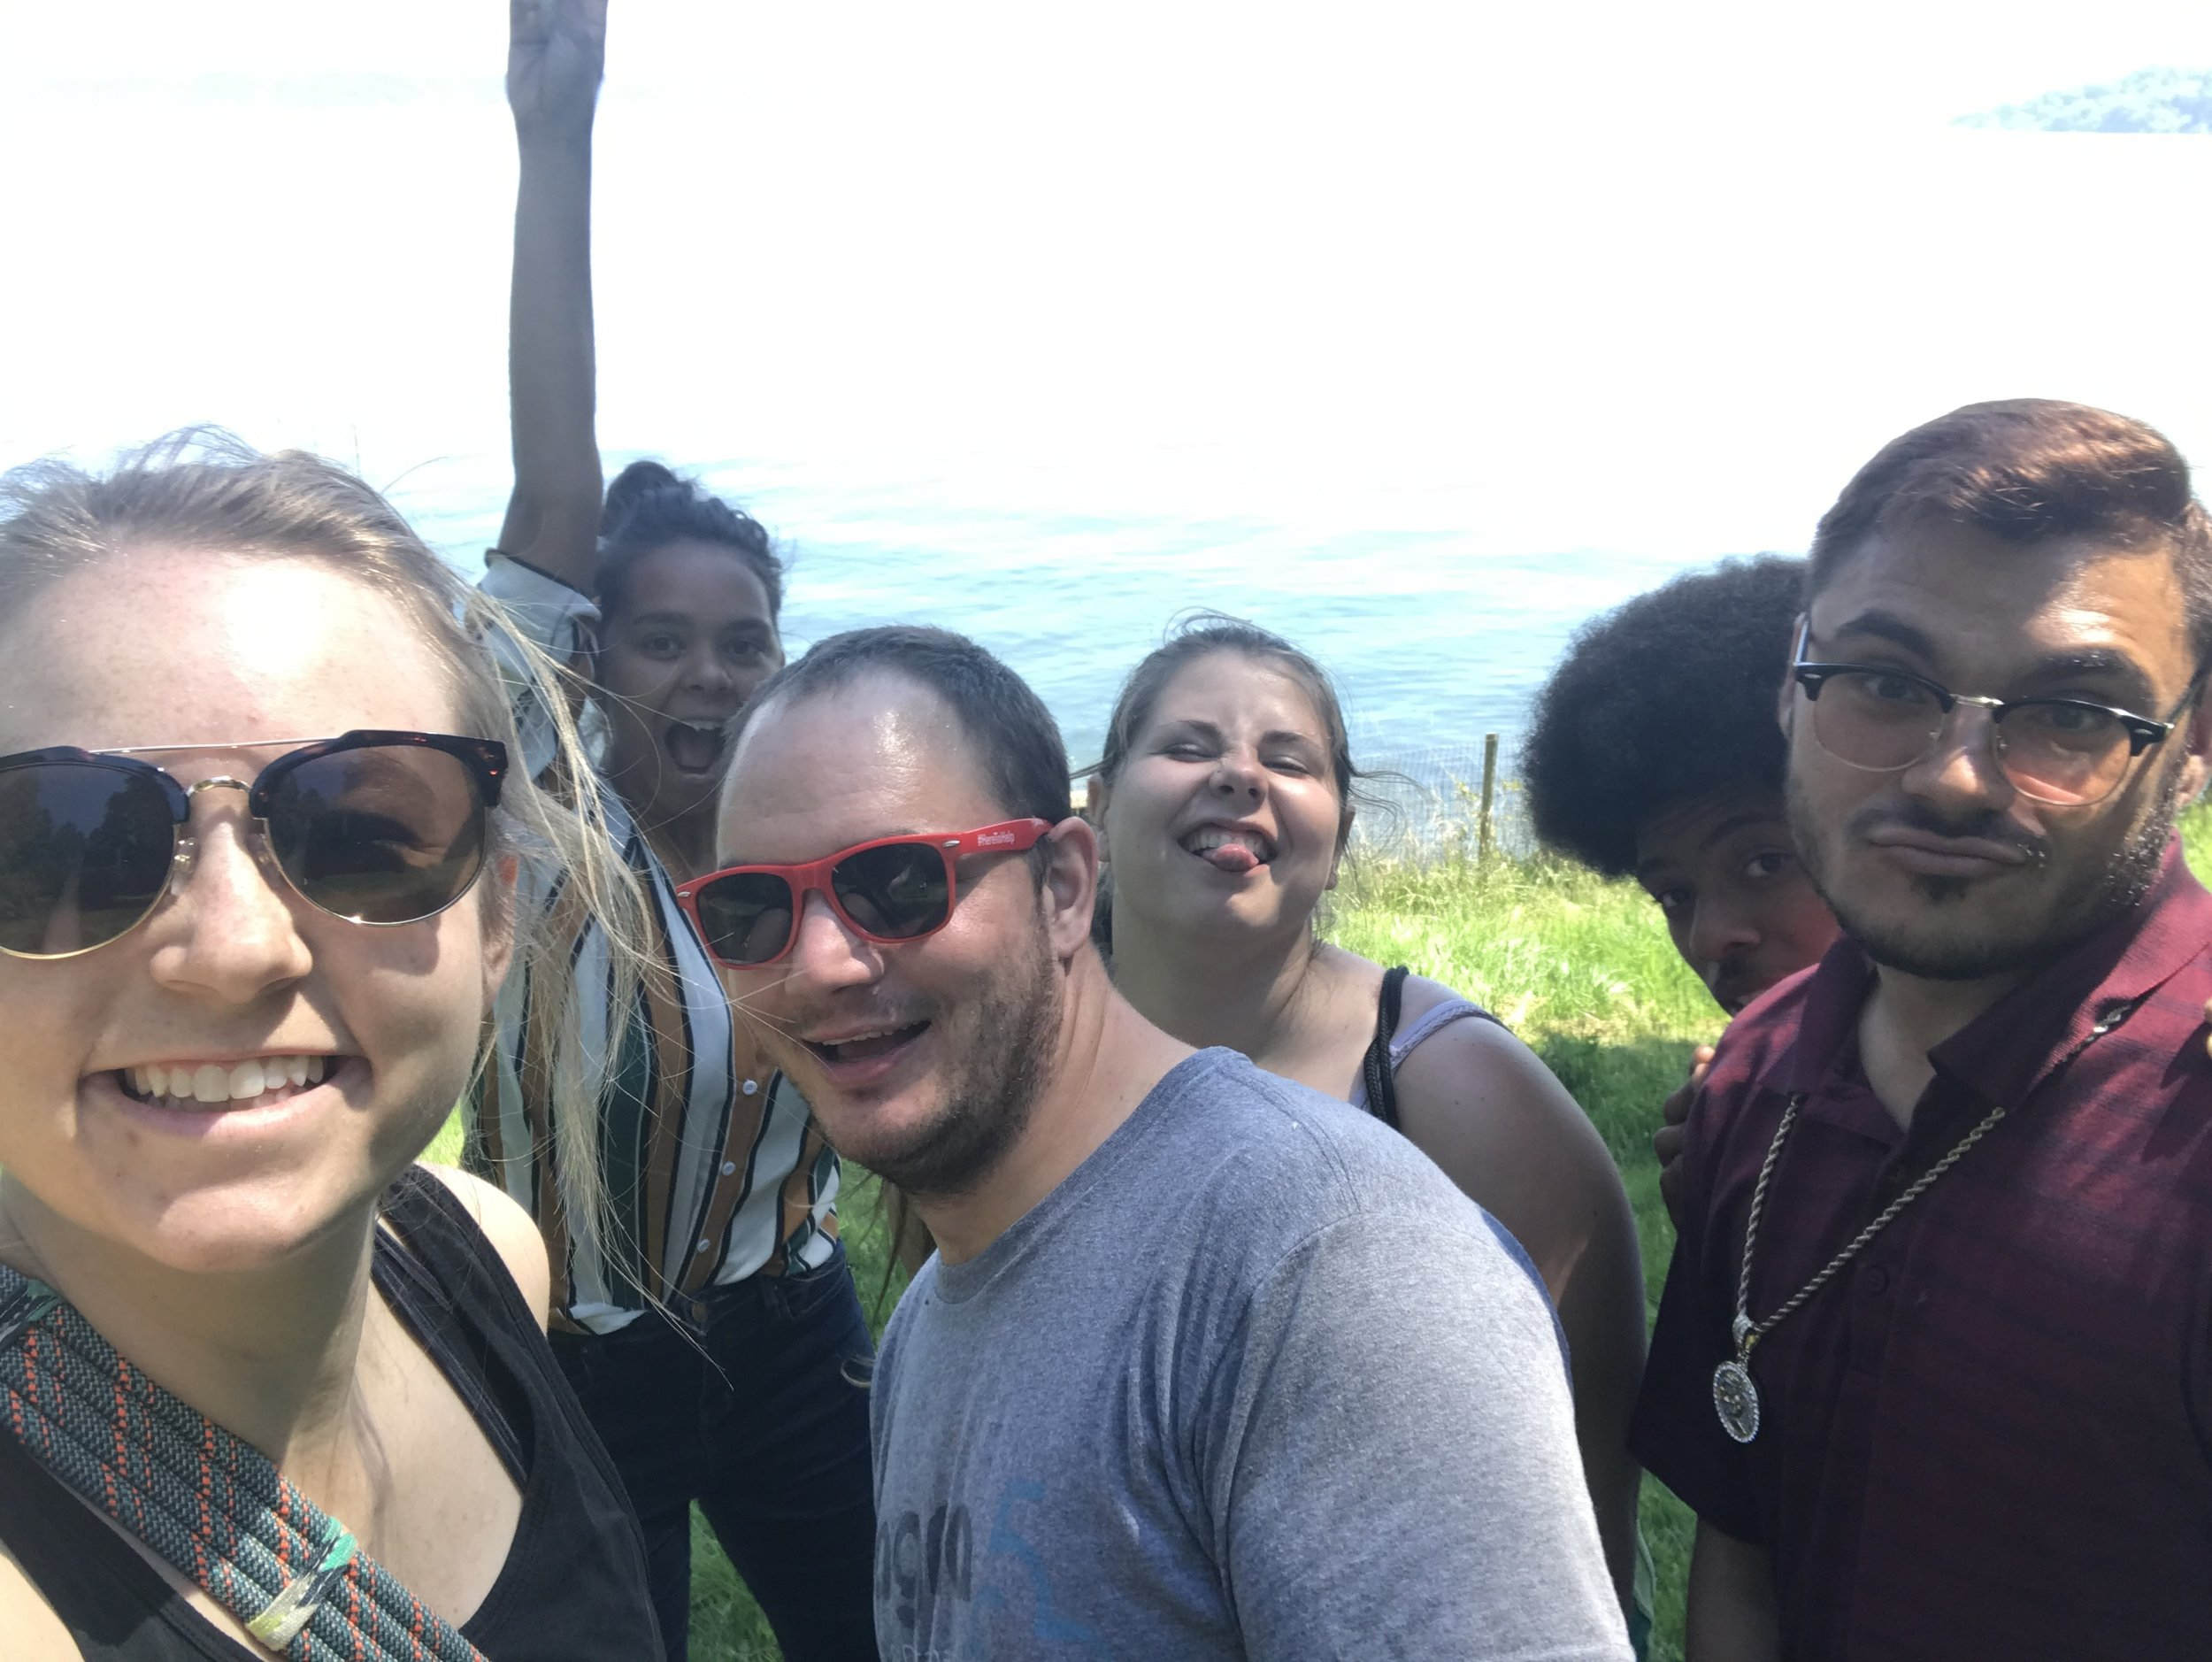 We took a ferry to Vashon Island to hike around!